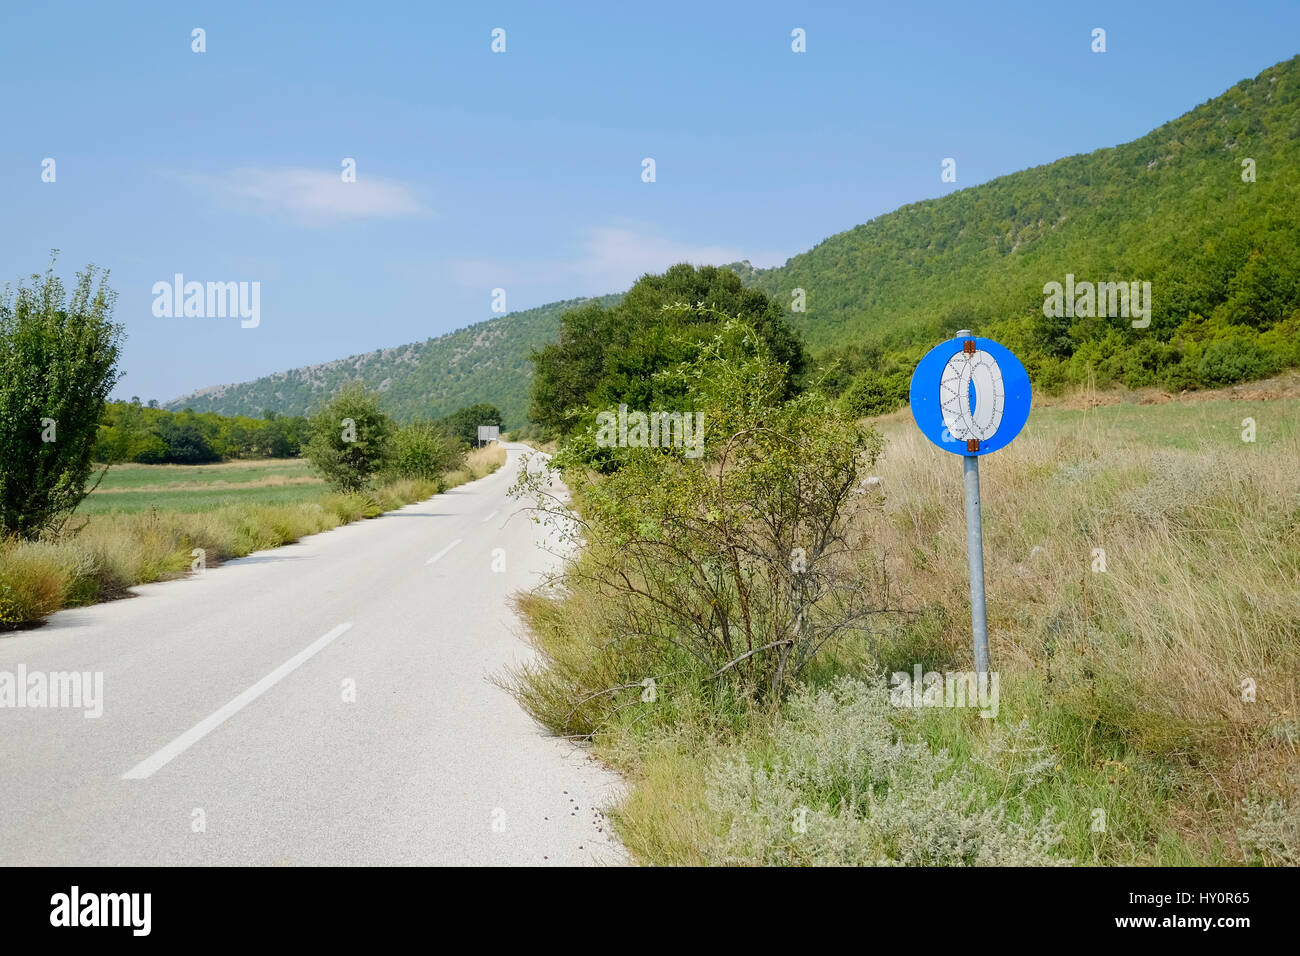 road sign for mounting snow chains is along an overgrown road on a summer day - Stock Image